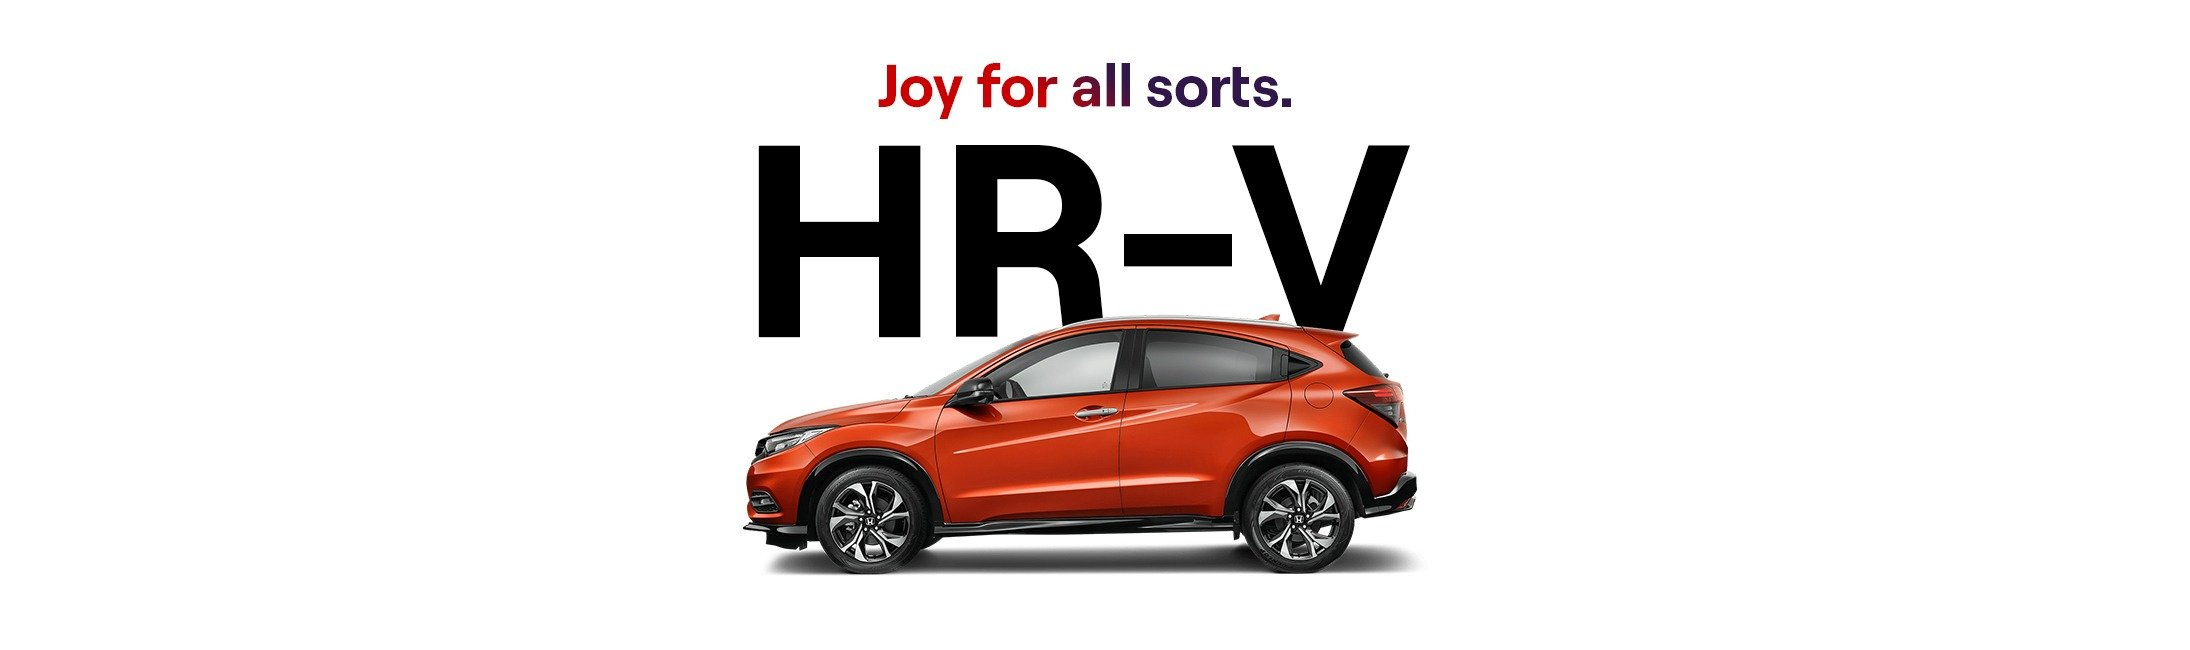 HR-V. Joy for all sorts.